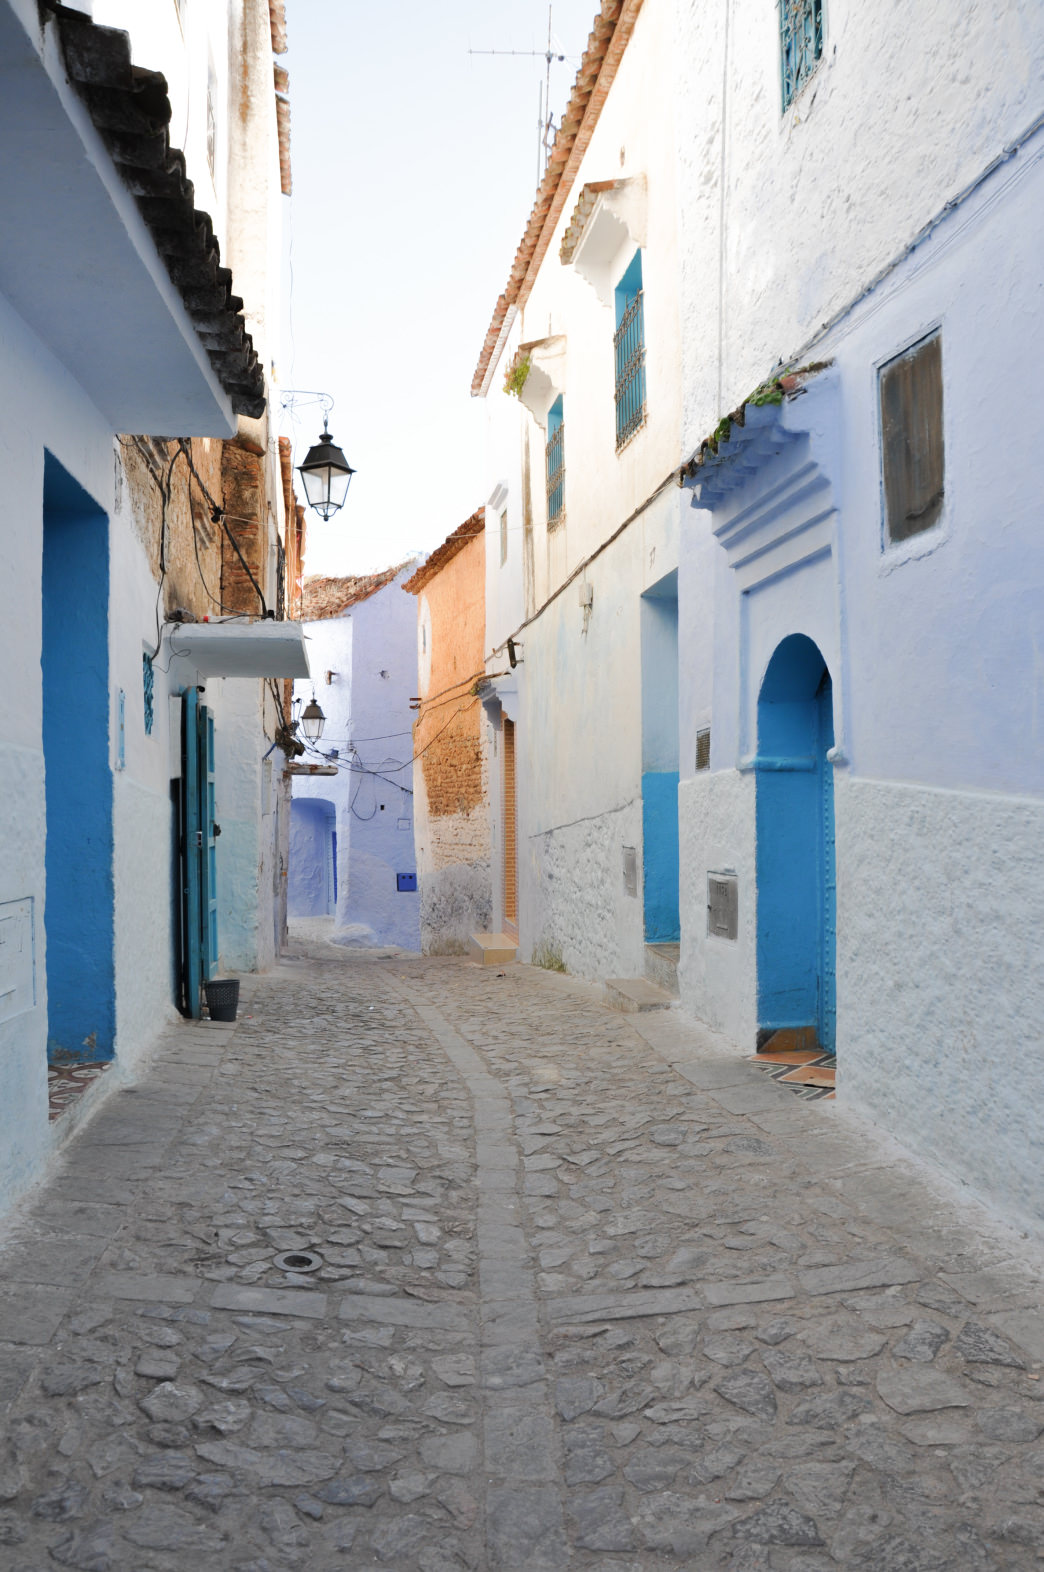 Morocco's cities have complex city centers called medinas, which can be fascinating to explore.     Julia Rogers